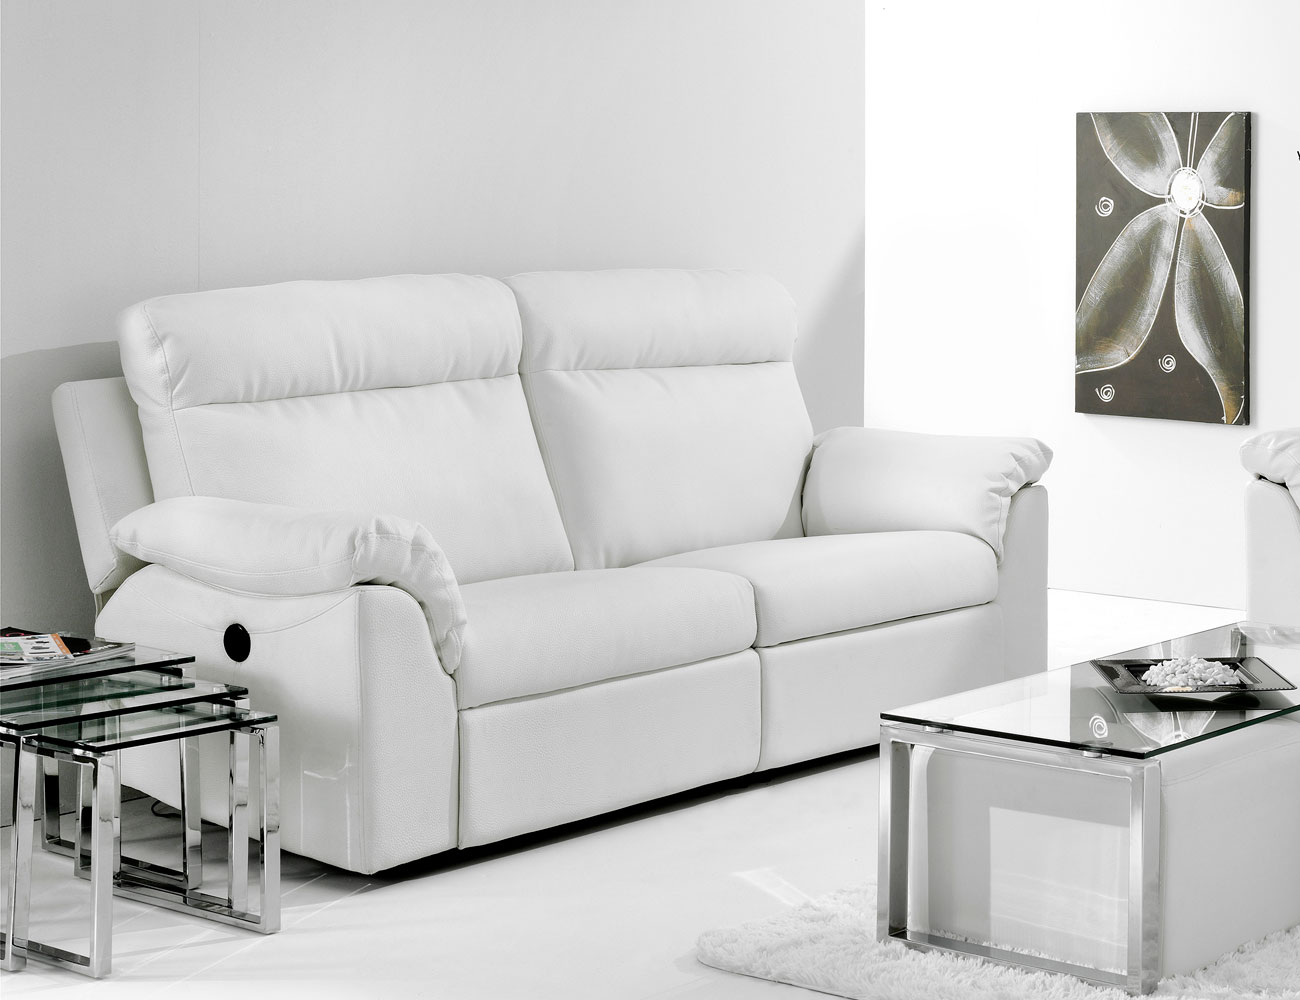 Sill n relax con palanca pared cero en simil piel 2209 for Sillon relax piel blanco